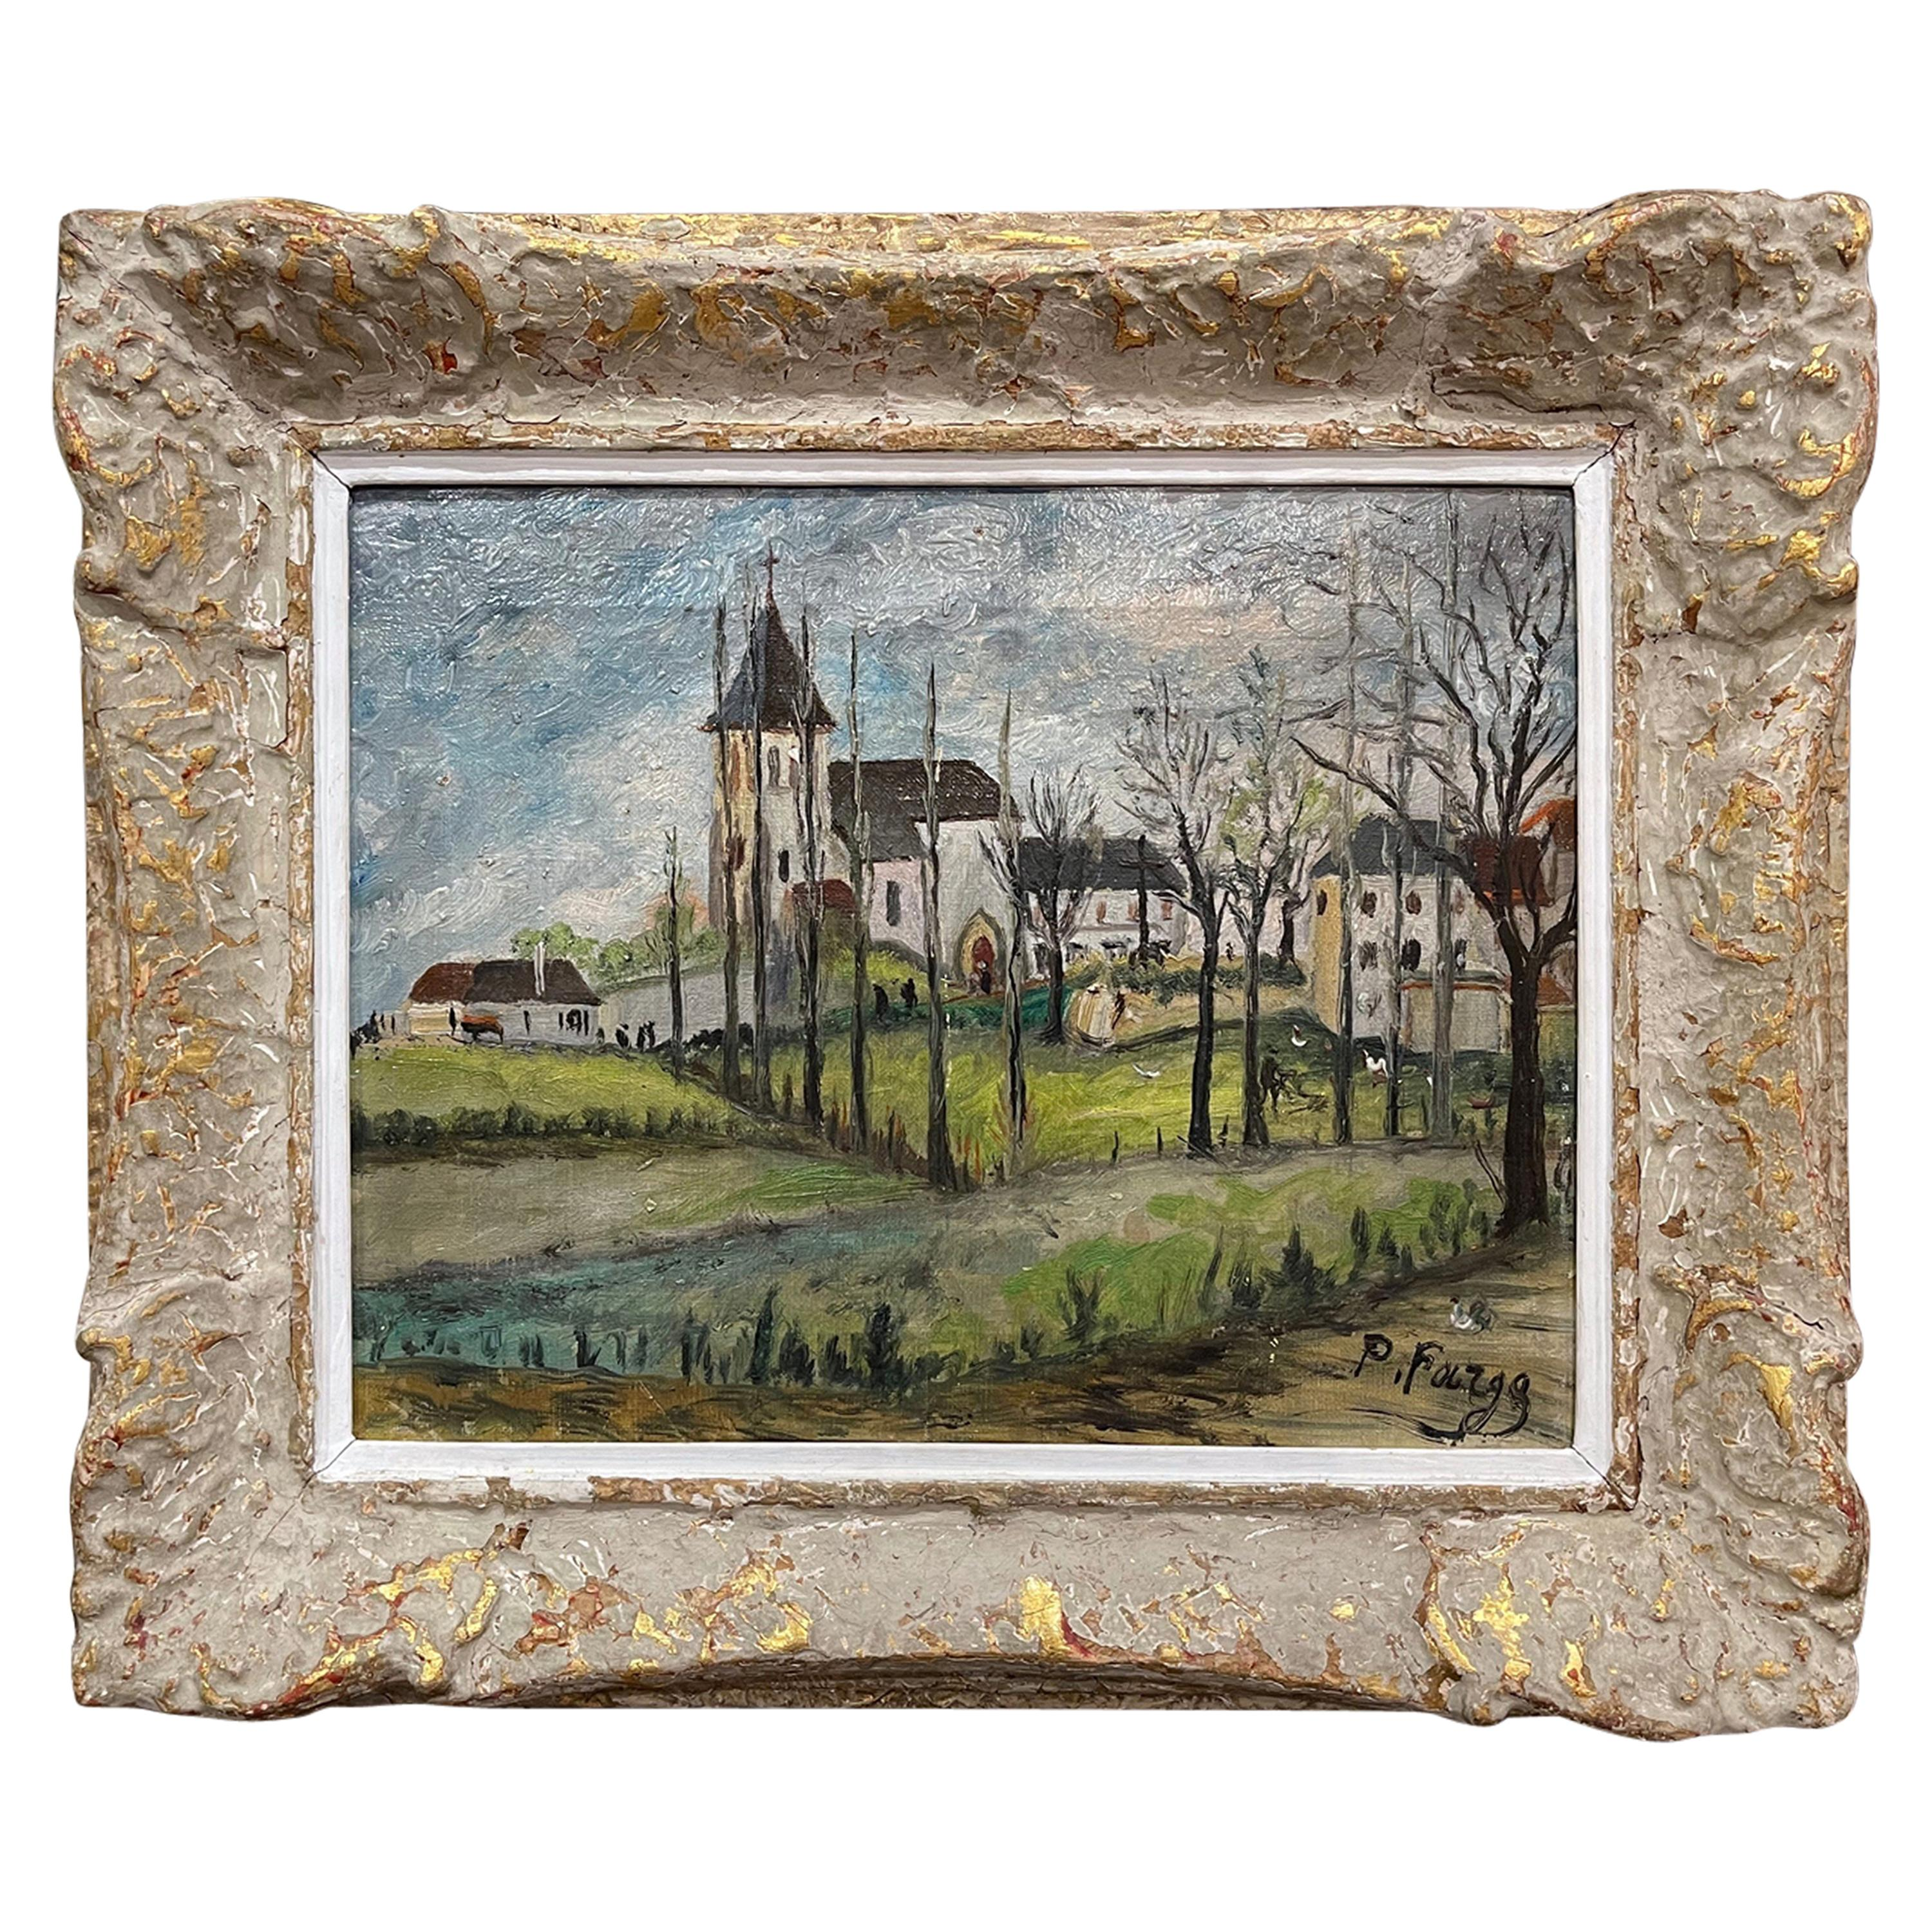 Early 20th Century French Oil on Canvas Painting Signed P. Farge